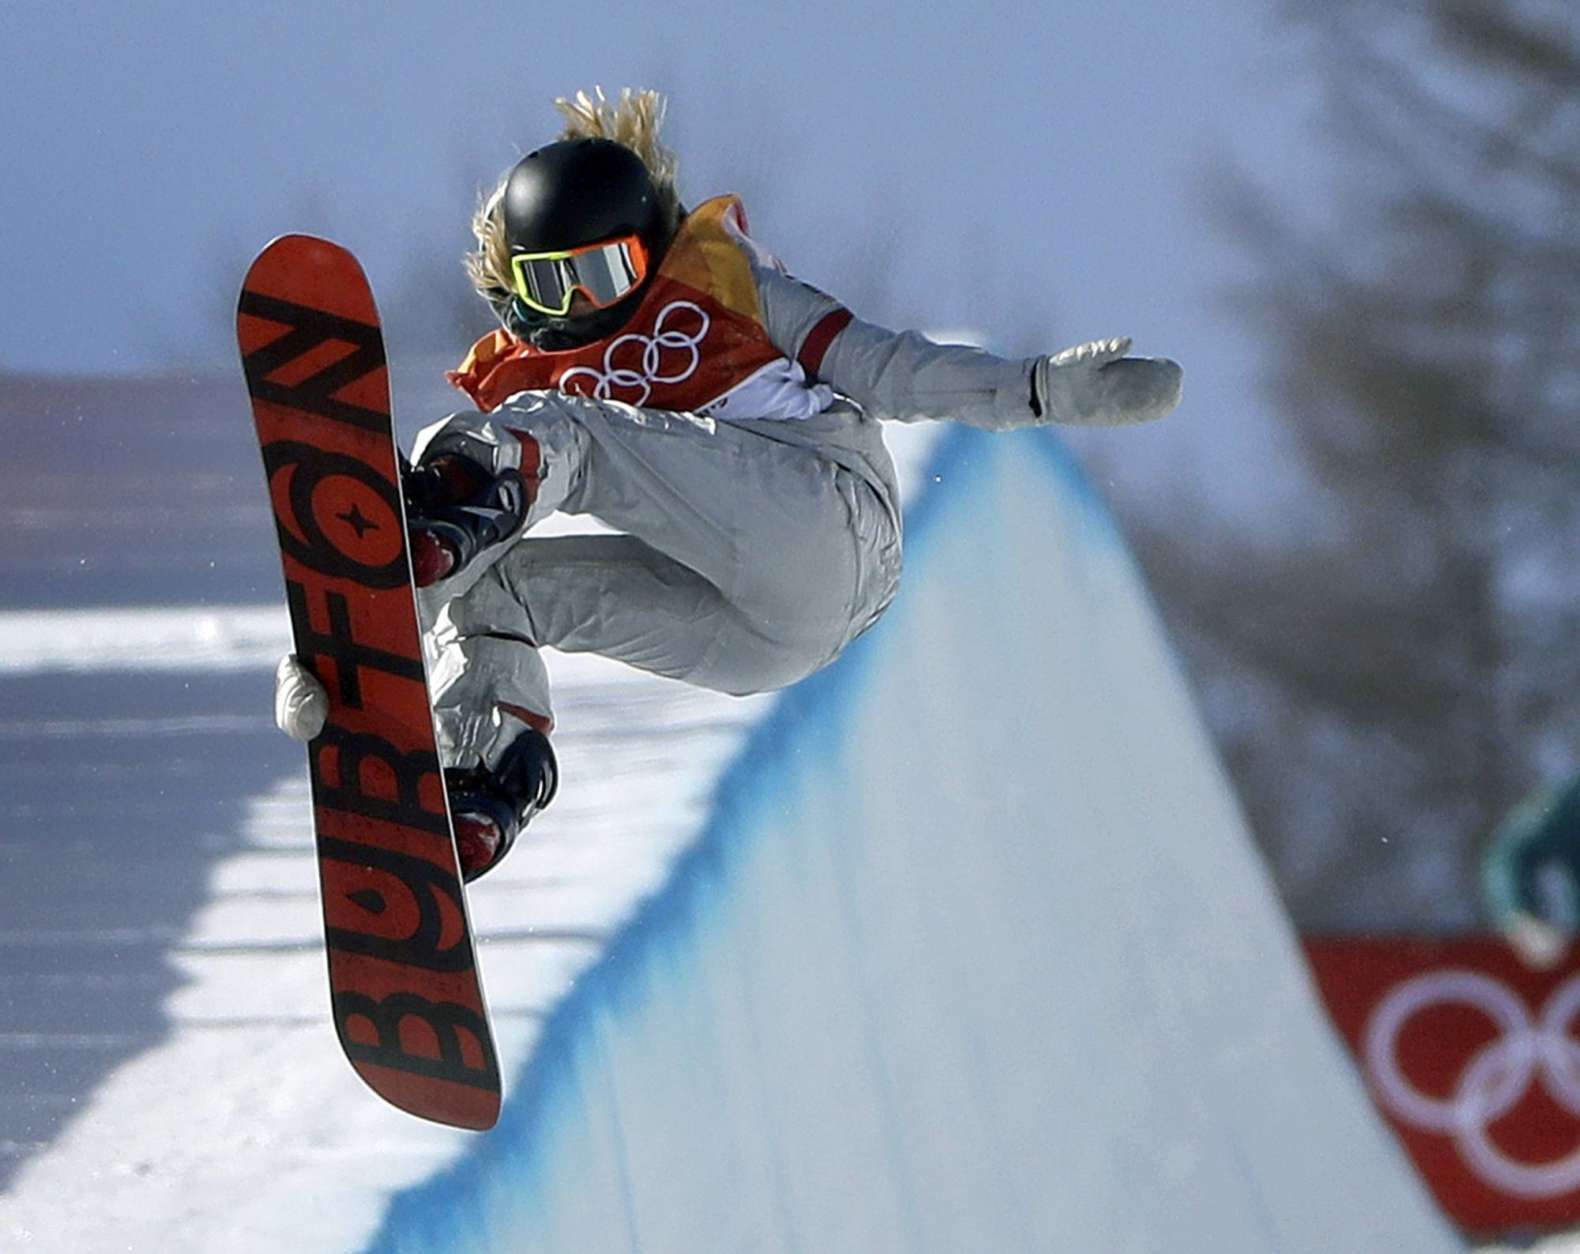 FILE- In this Feb. 13, 2018, file photo, Chloe Kim, of the United States, jumps during the women's halfpipe finals at Phoenix Snow Park at the 2018 Winter Olympics in Pyeongchang, South Korea. Before Kim won gold in the snowboarding halfpipe event, her infectious personality and heartwarming origin story had already won her sponsorships from Toyota, Samsung, Visa and others. (AP Photo/Gregory Bull, File)